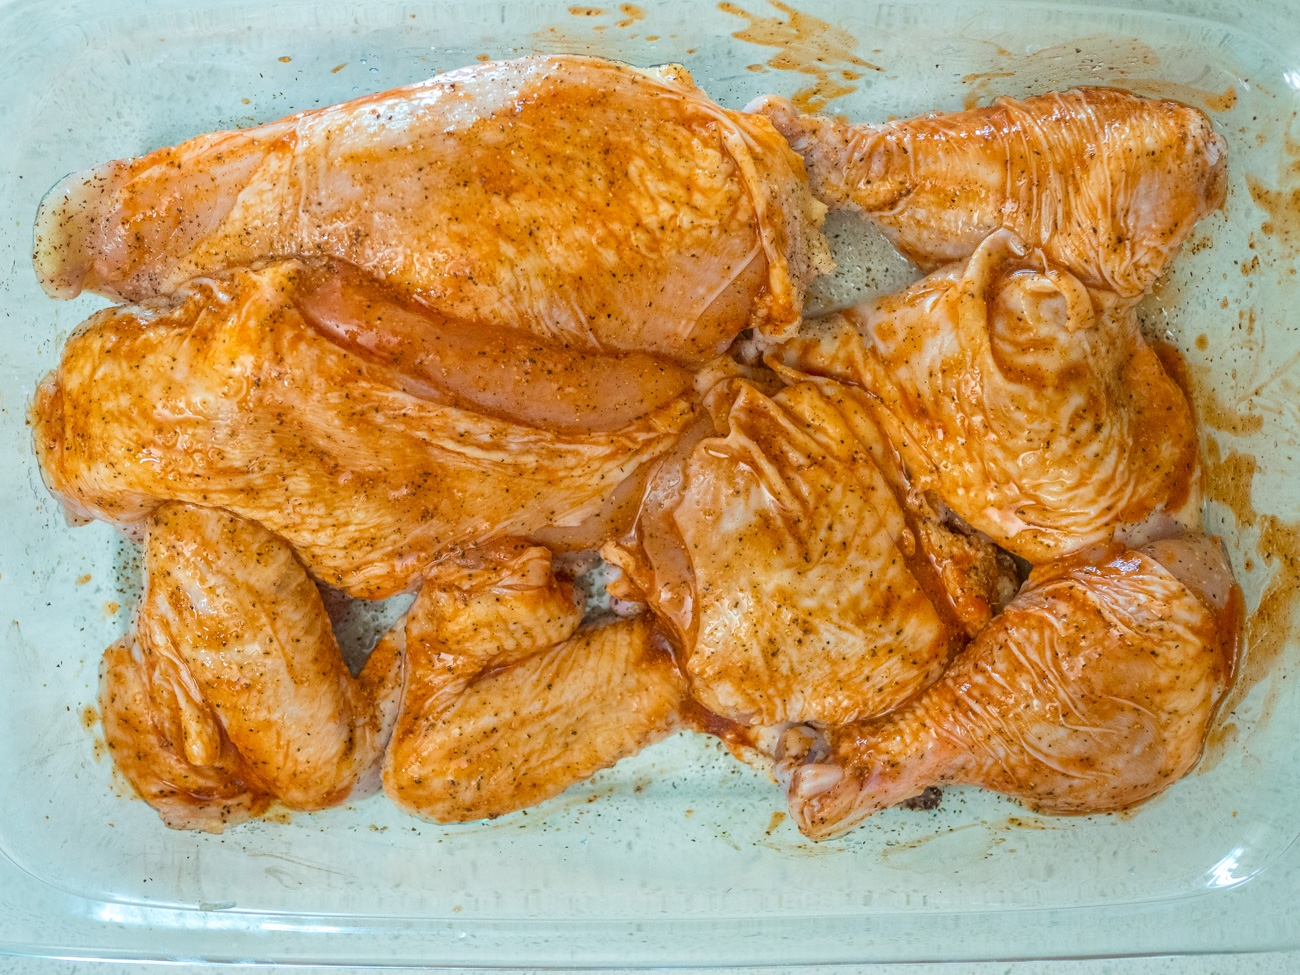 Cut chicken into pieces if whole. Season meat with hot sauce, salt, and pepper. Use 1 cup of the flour to dust the chicken pieces.